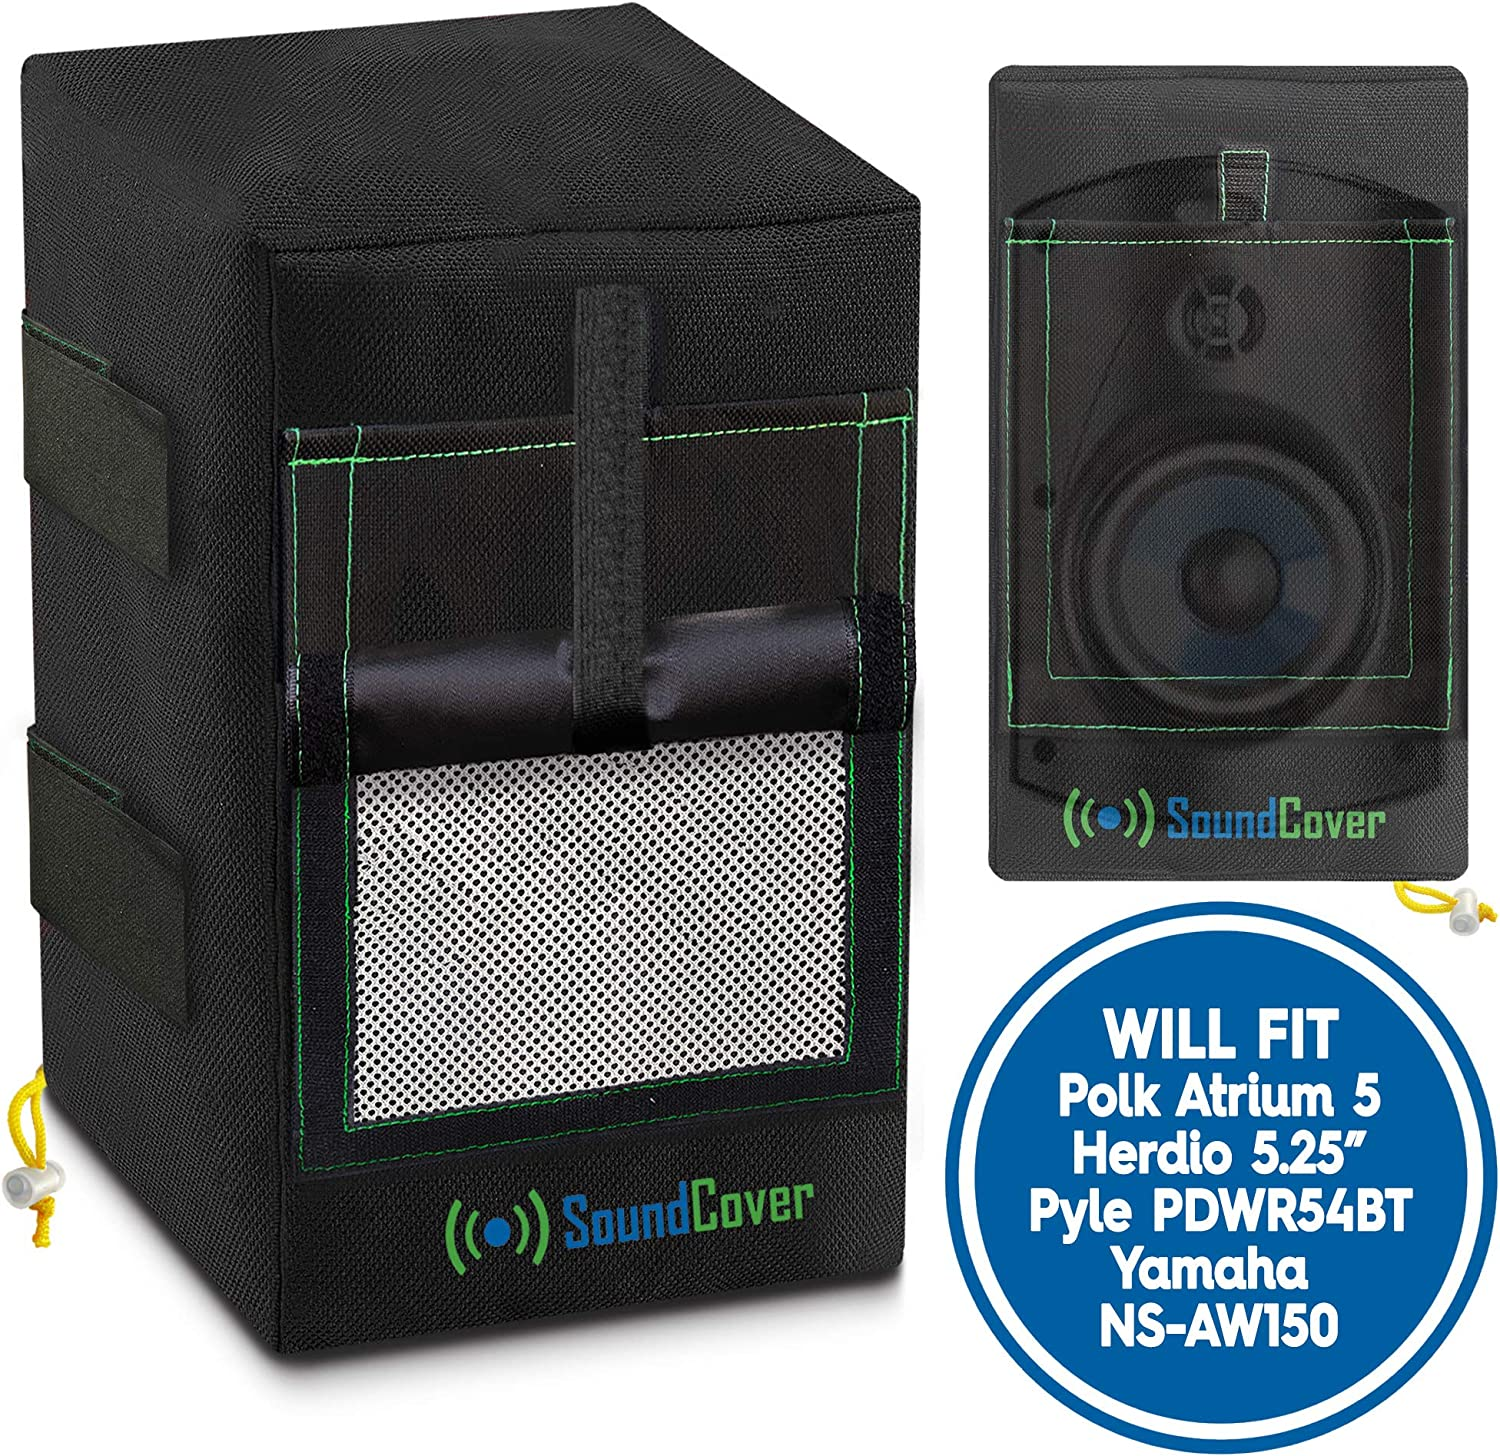 """2 Black Waterproof UV Protection Speaker Covers for Outdoor Speakers with Sound Option fit Yamaha NS-AW150, Polk Audio Atrium 5, Herdio 5.25"""" & Pyle 5.25 Speakers (MAX Size: H 10.4"""" X W 6.7"""" X D 8.3"""")"""